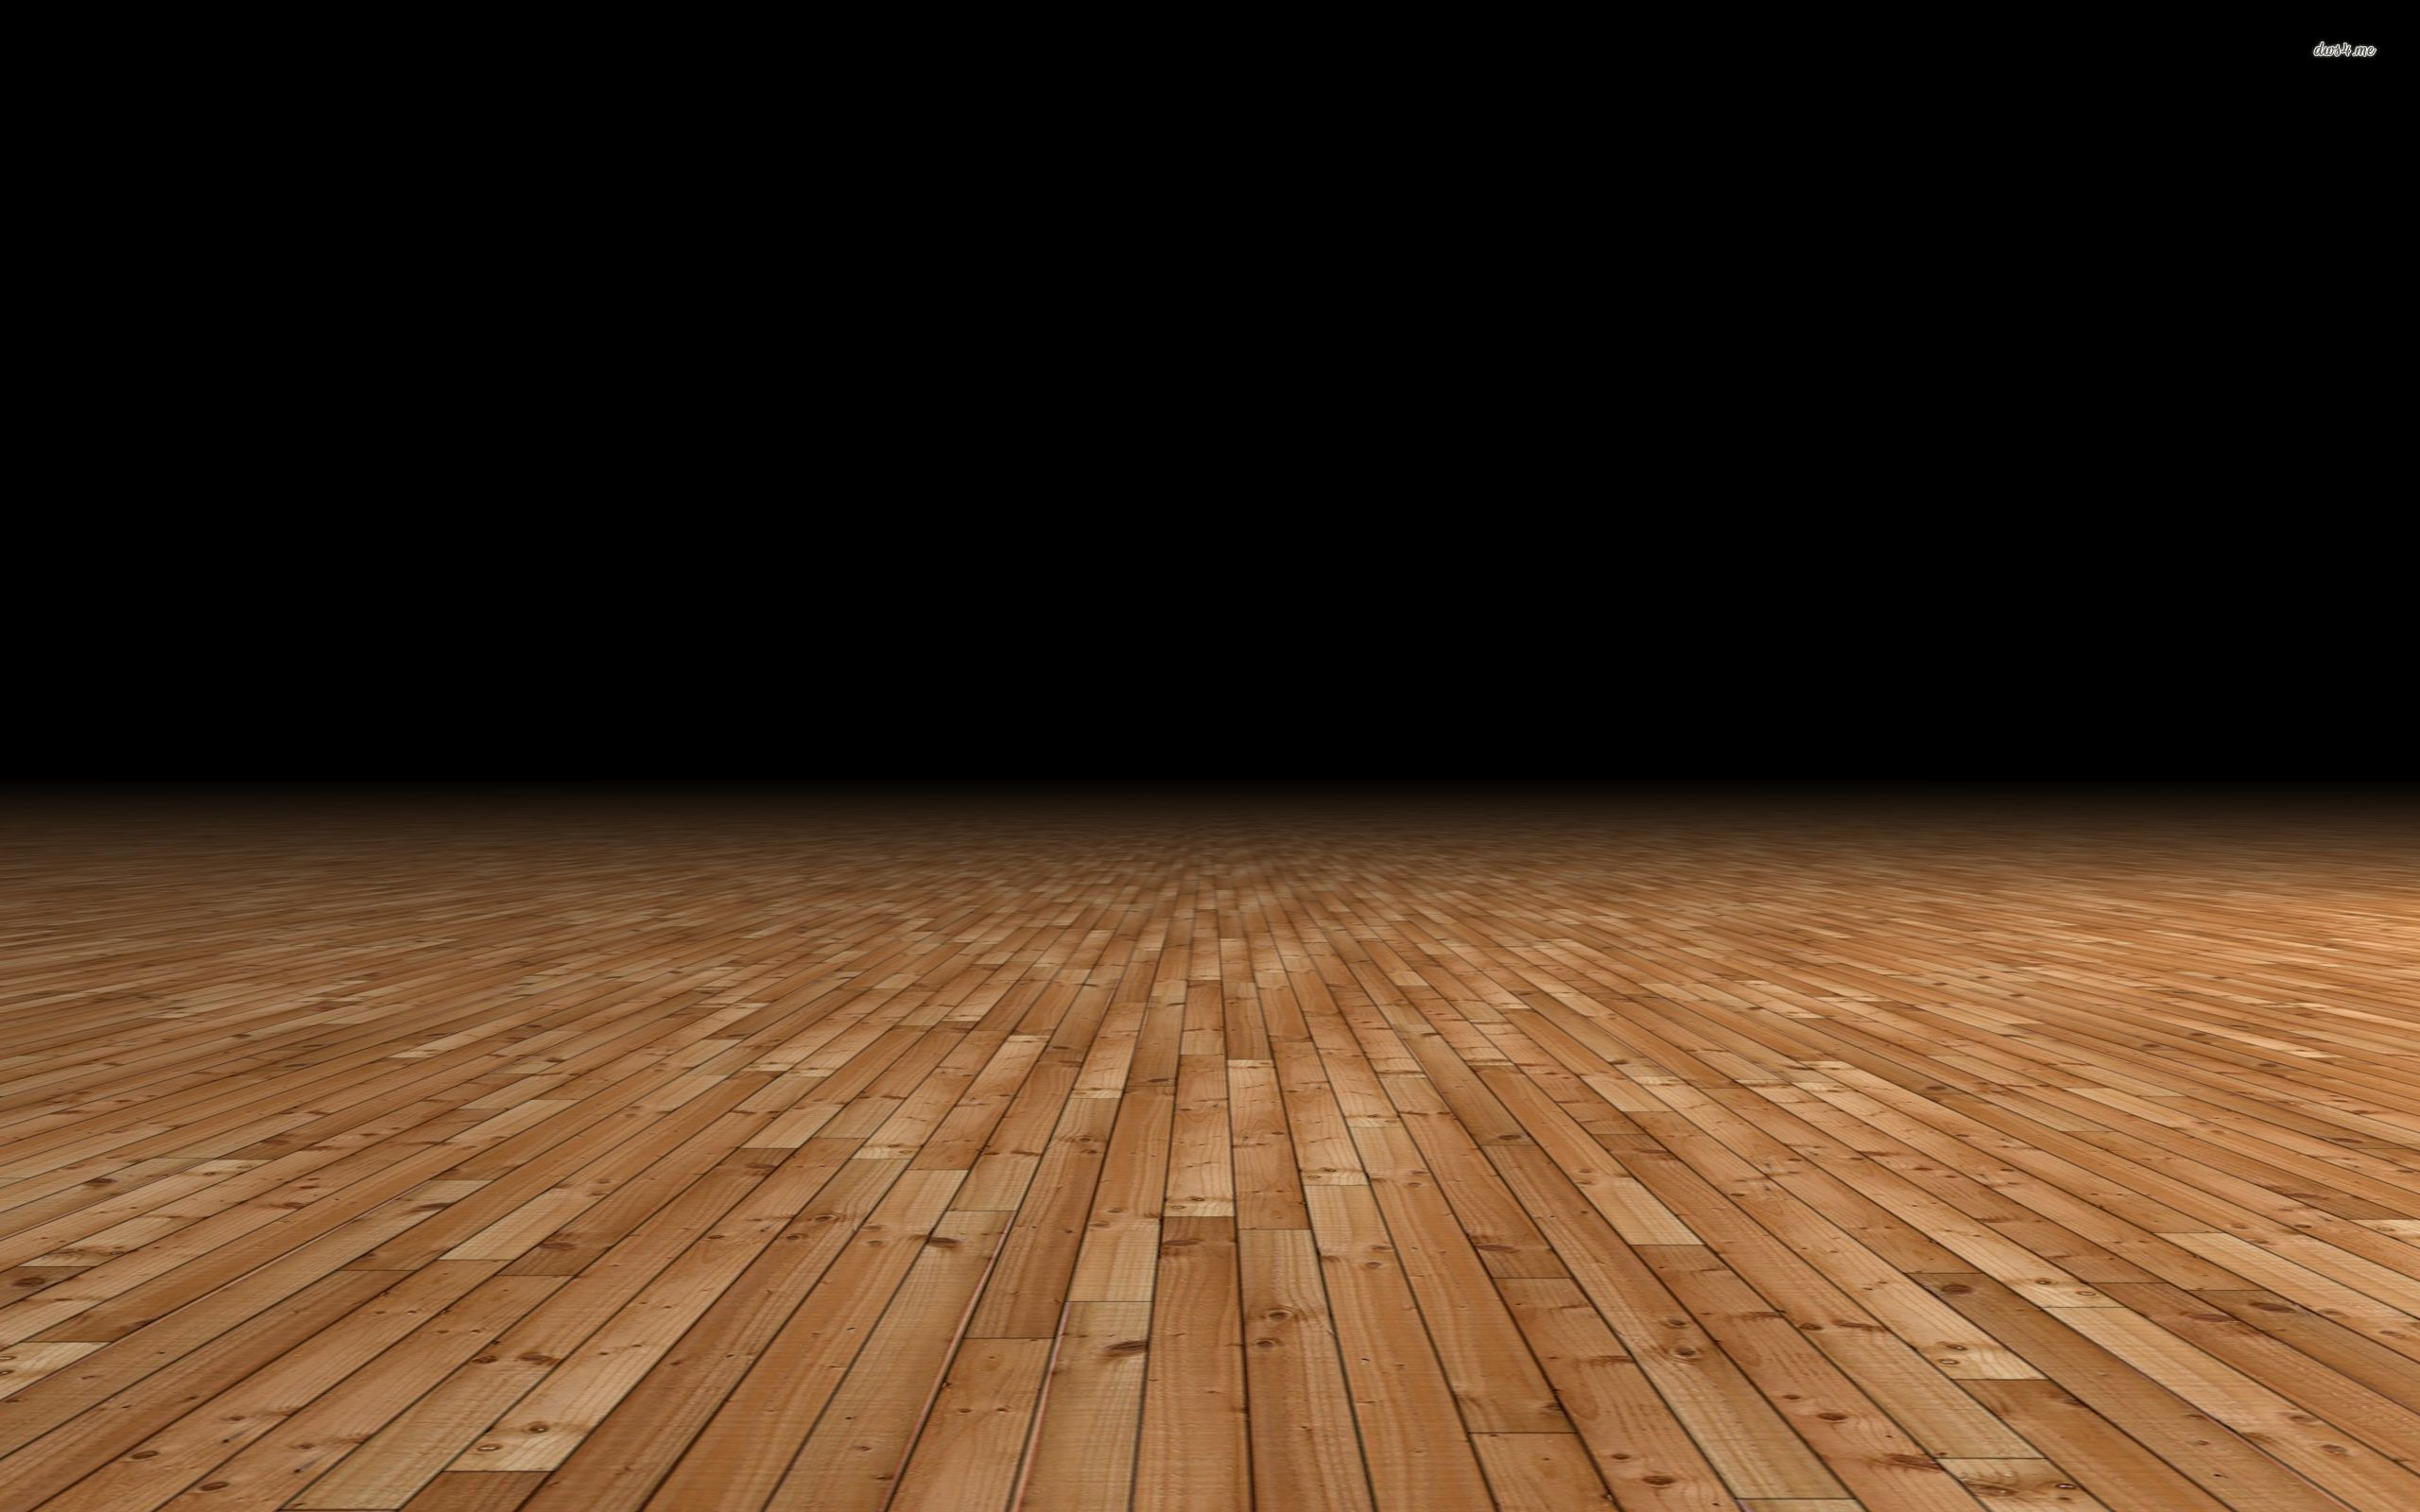 wood floor wallpaper 65 images